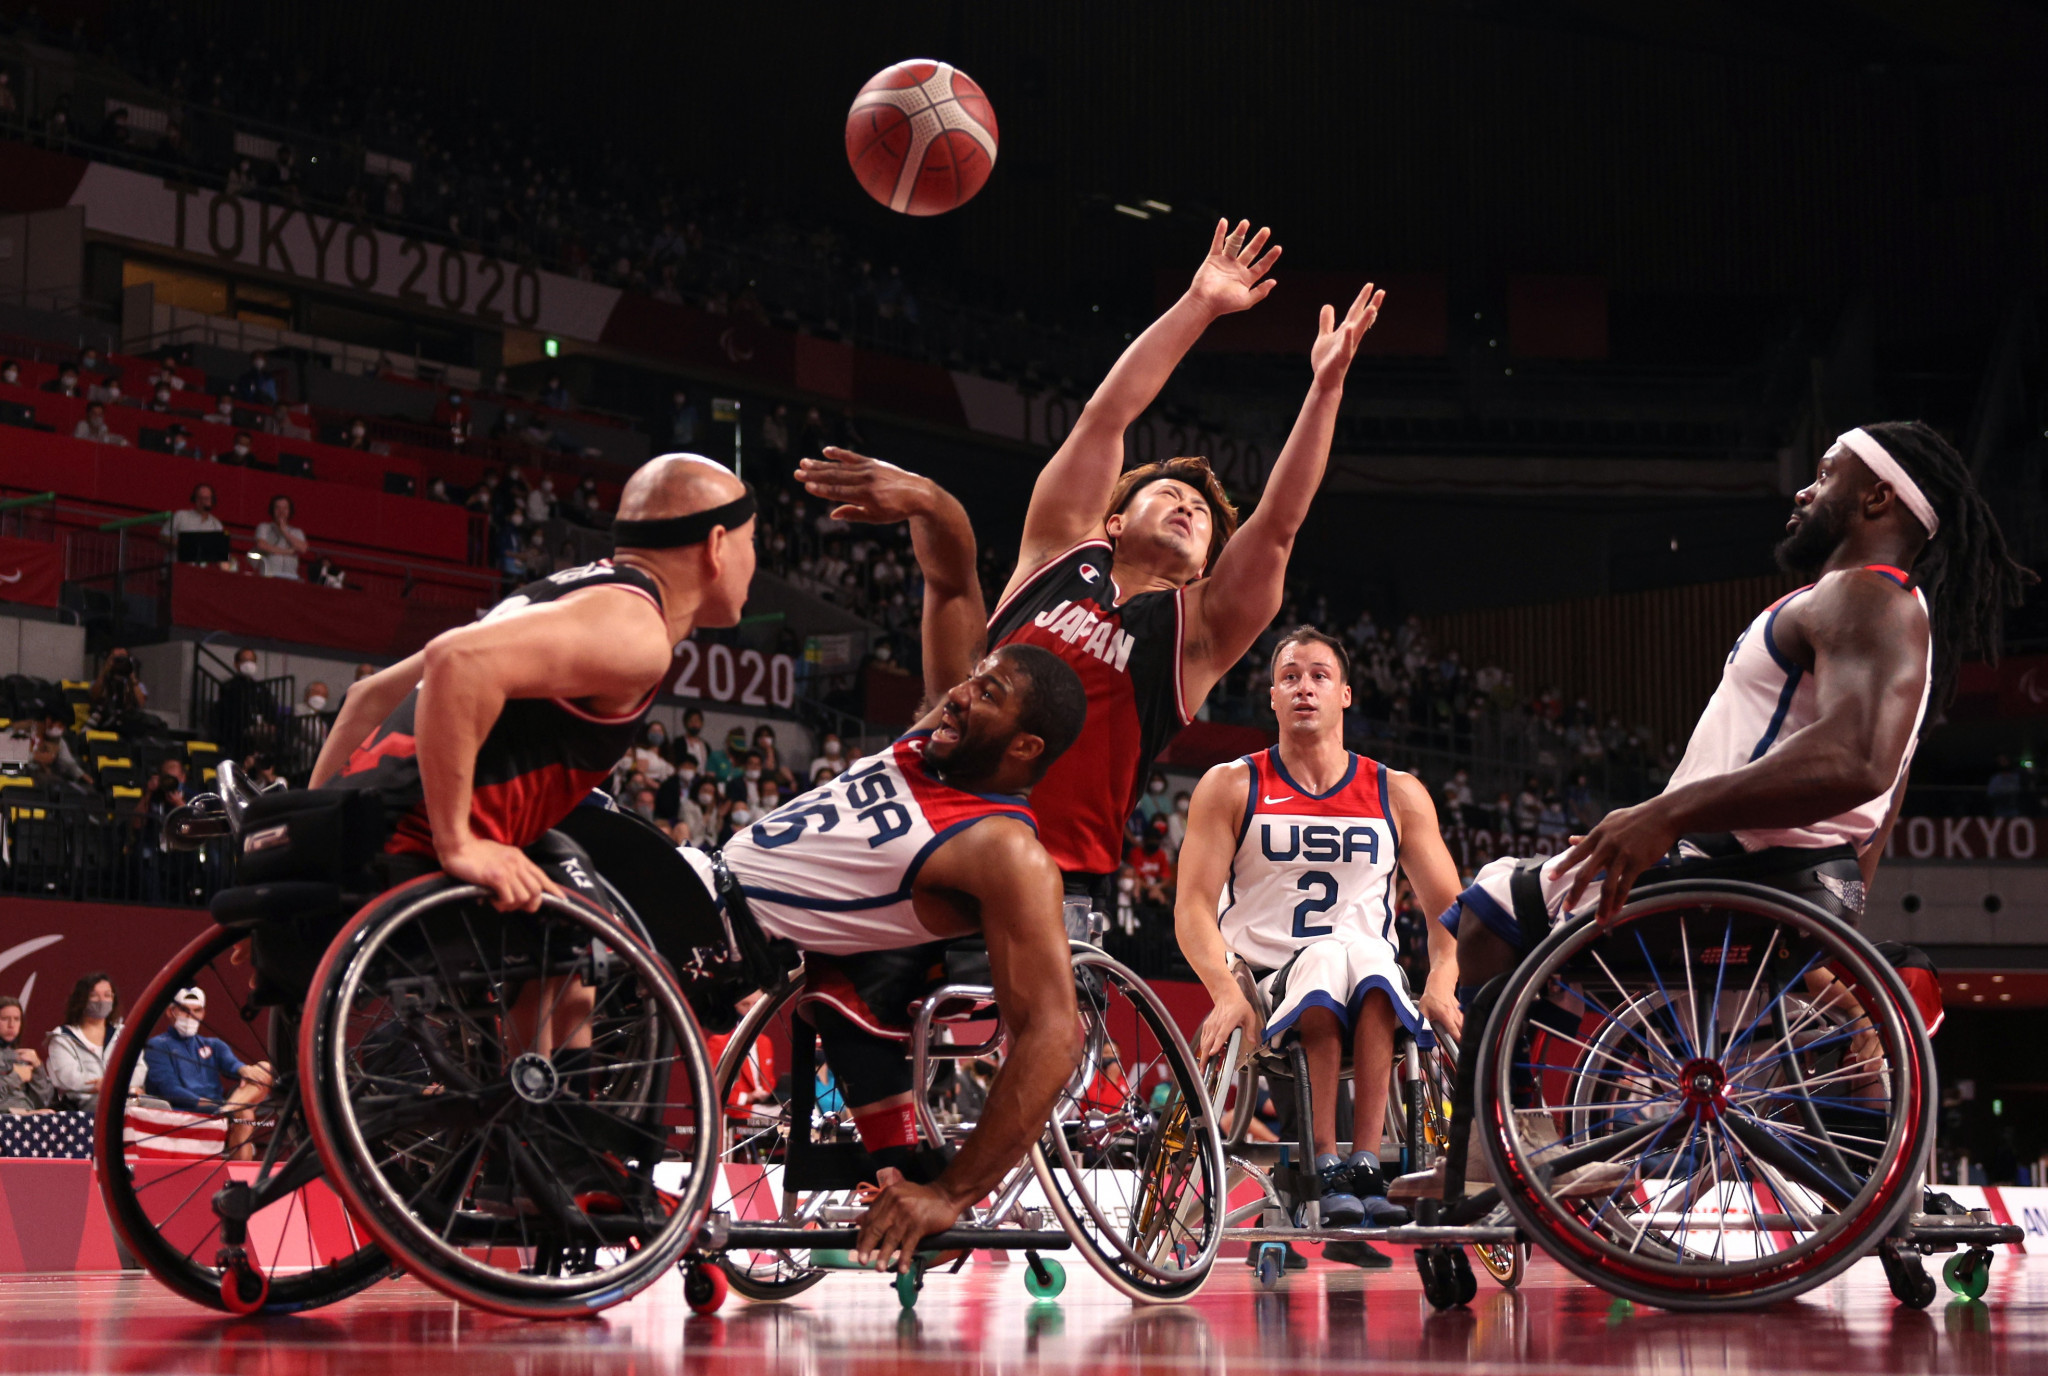 The United States faced a five-point deficit against Japan midway through the final quarter ©Getty Images